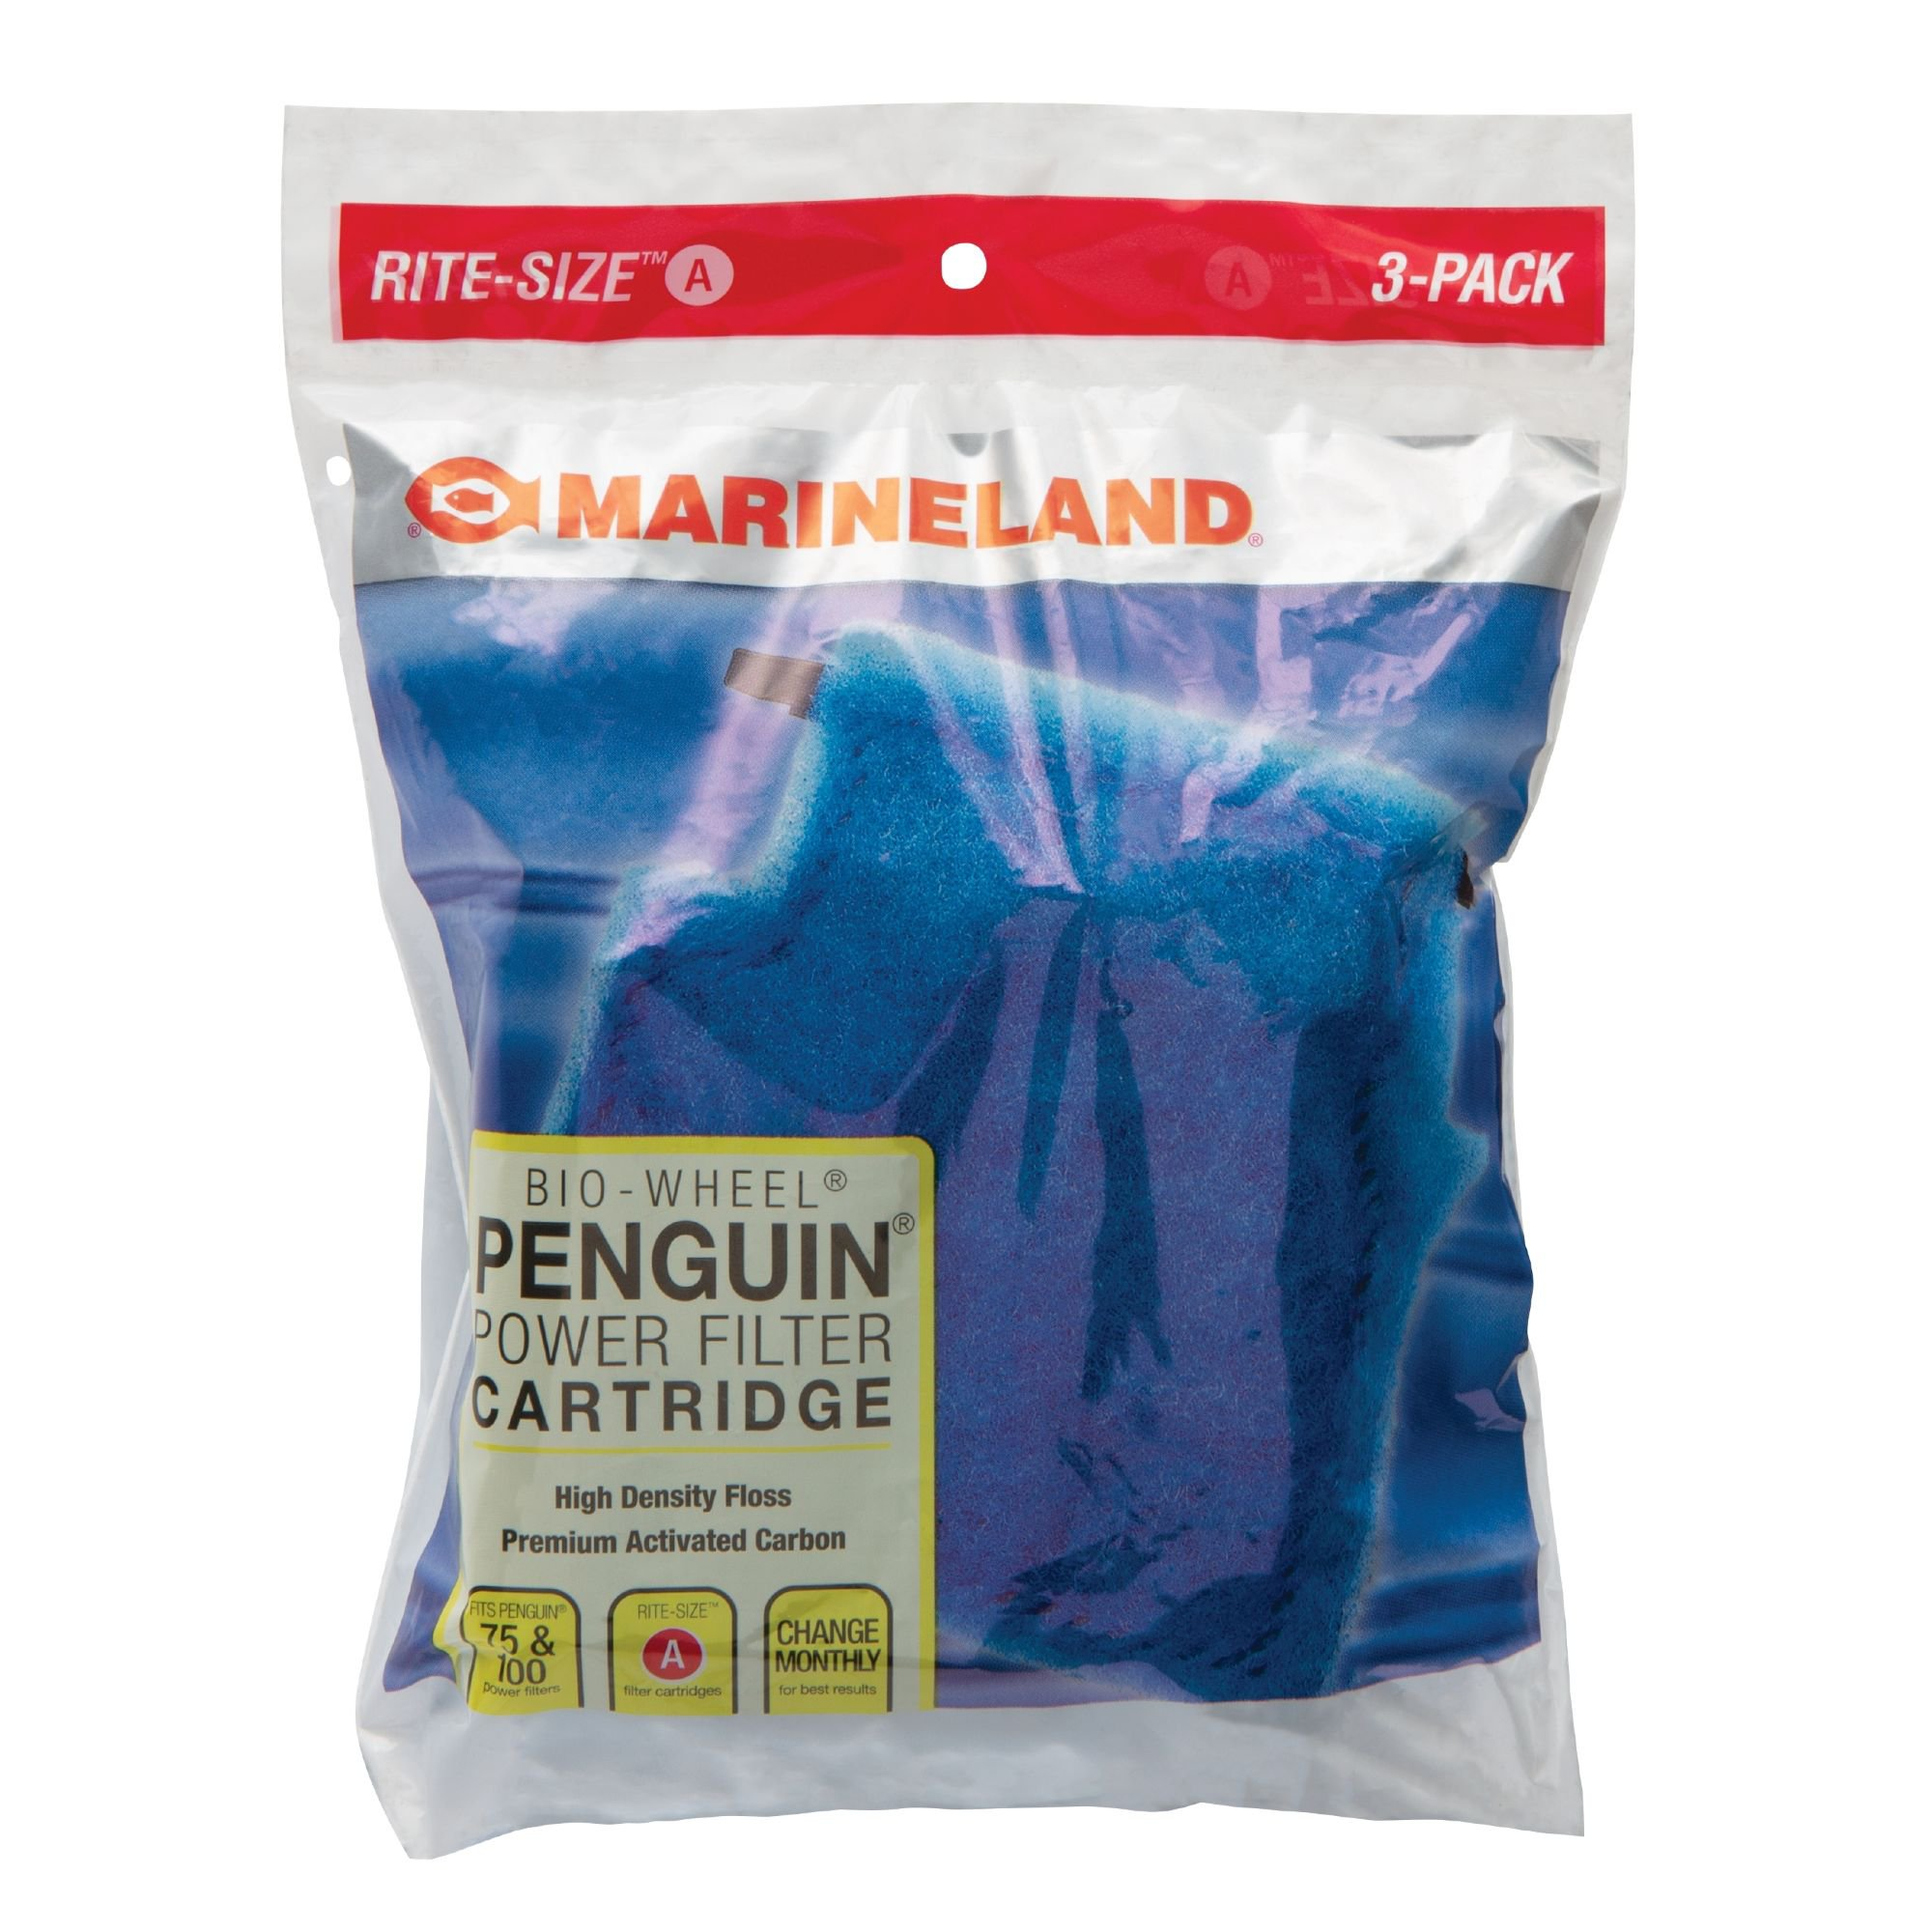 Marineland Rite-Size Bonded Filter Sleeve Three-Pack for Penguin Mini